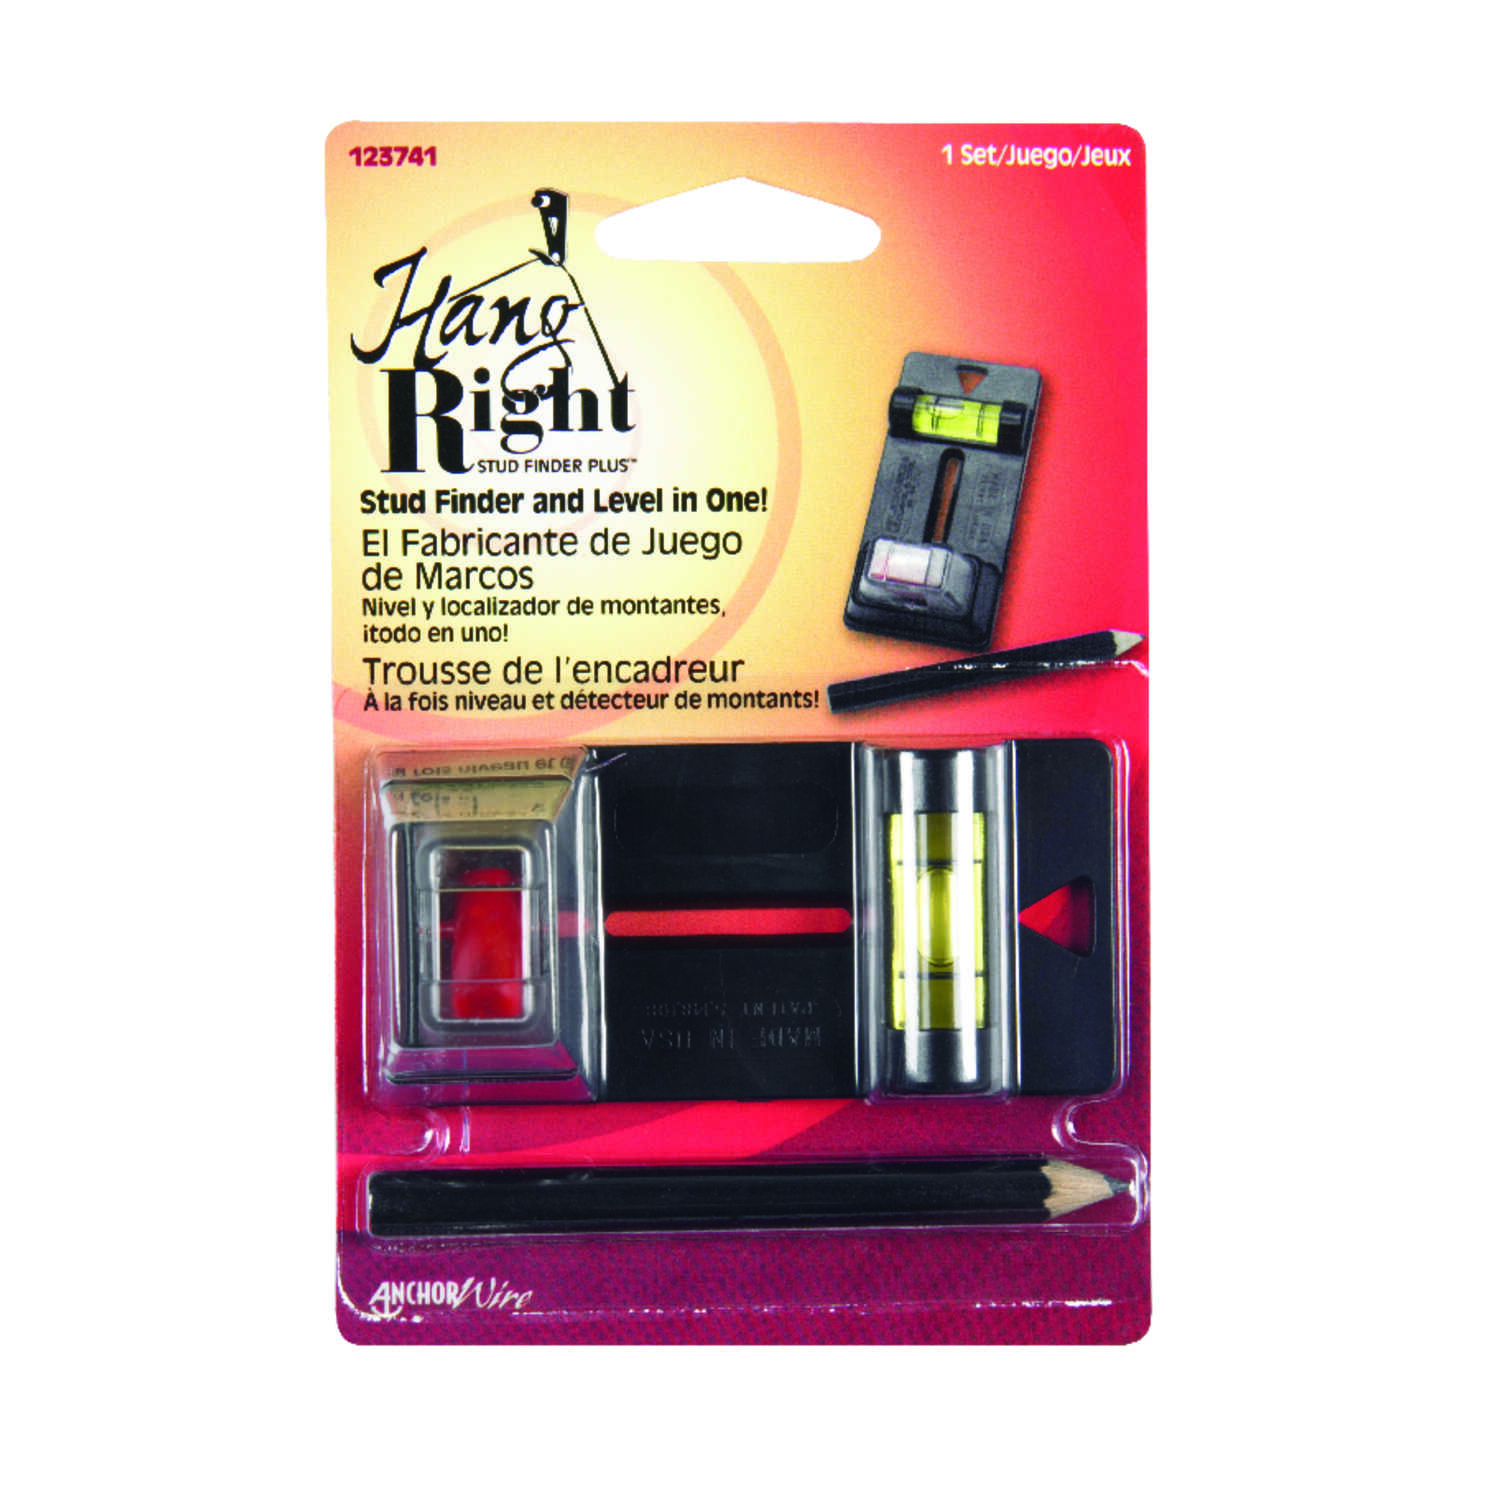 Hillman  Hang Right  Plastic Coated  Black  Plastic  Stud Finder and Level Vial  1 pk 1 lb.